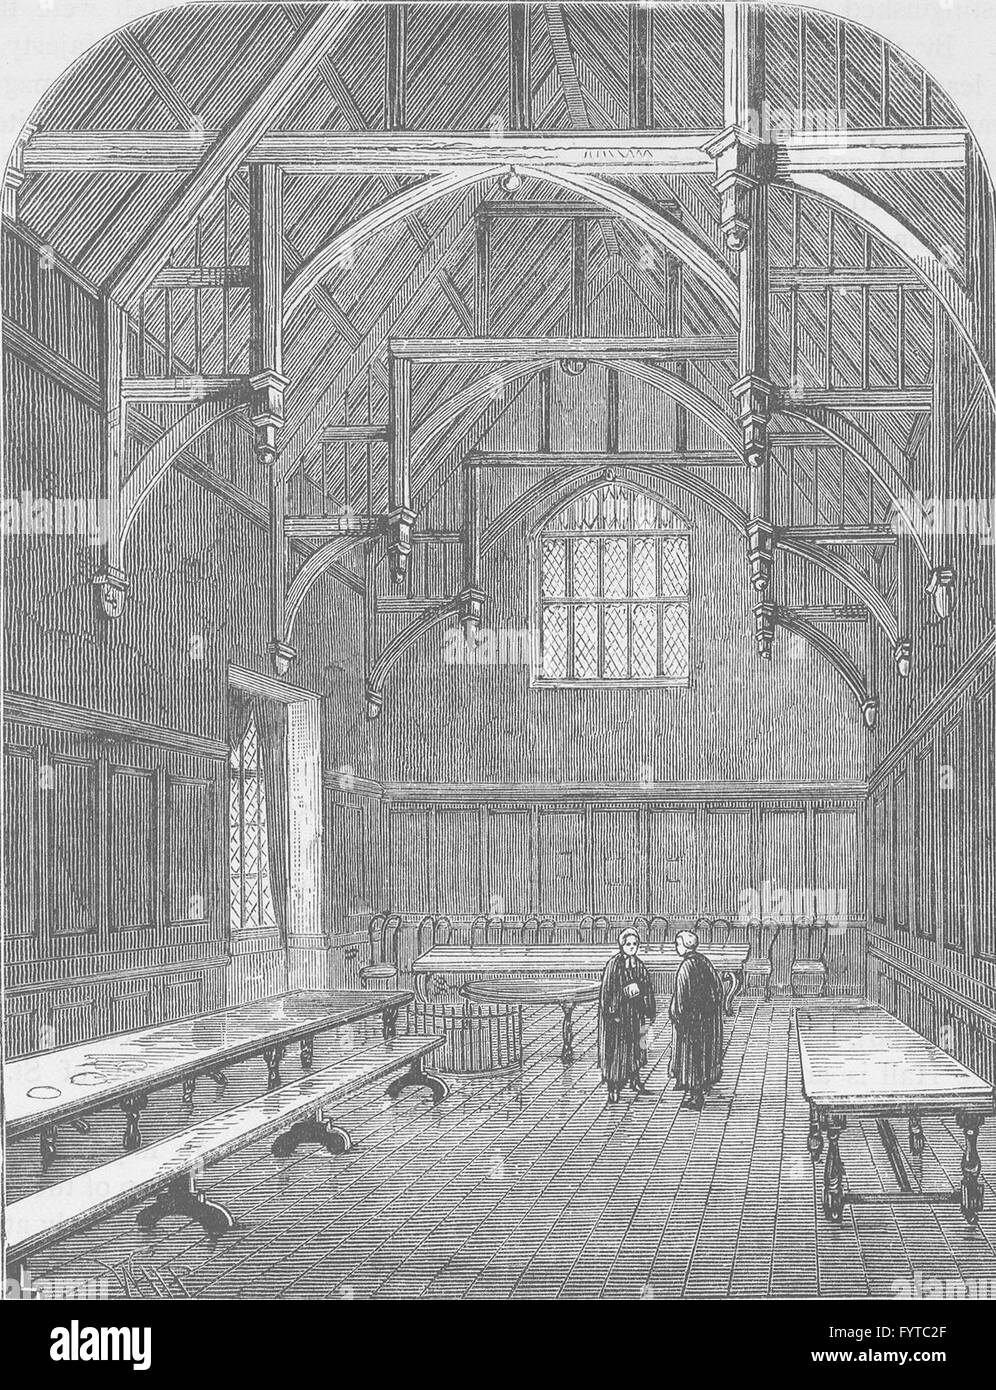 THE HOLBORN INNS OF COURT AND CHANCERY: The Hall of Gray's Inn. London, c1880 - Stock Image